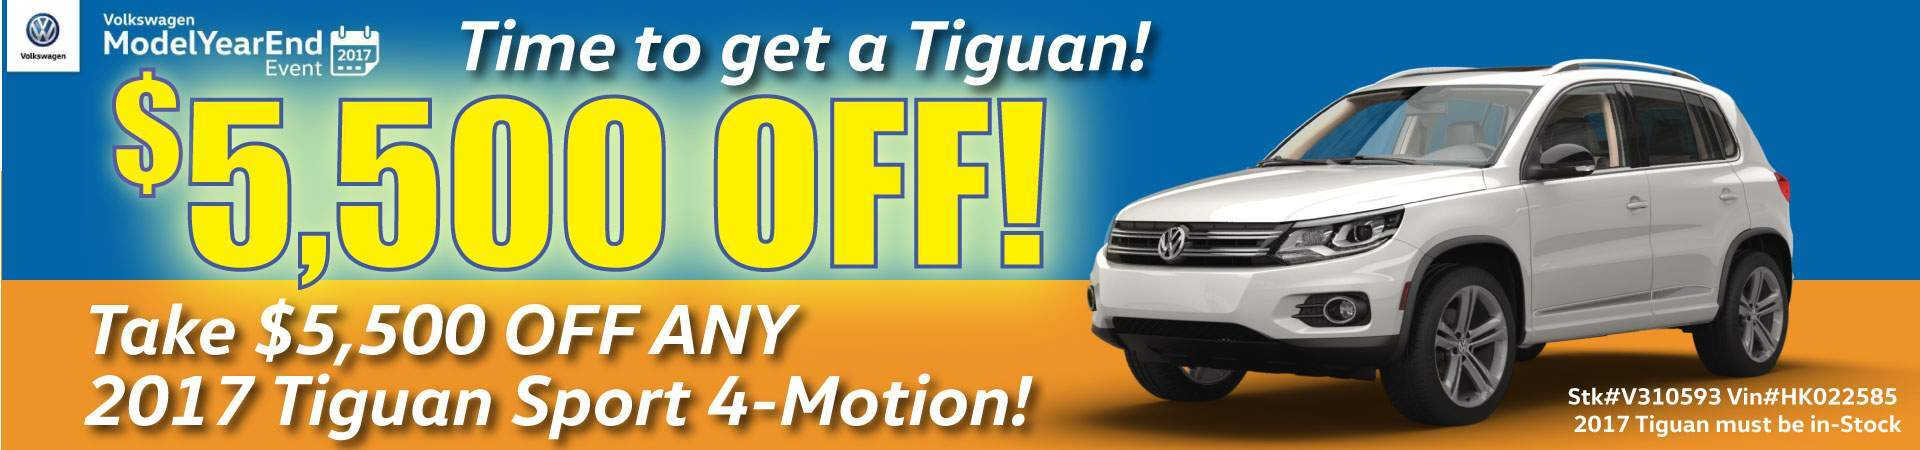 $5,500 OFF ANY IN-STOCK 2017 VW TIGUAN SPORT 4-MOTION TILL JULY 31st 2017.